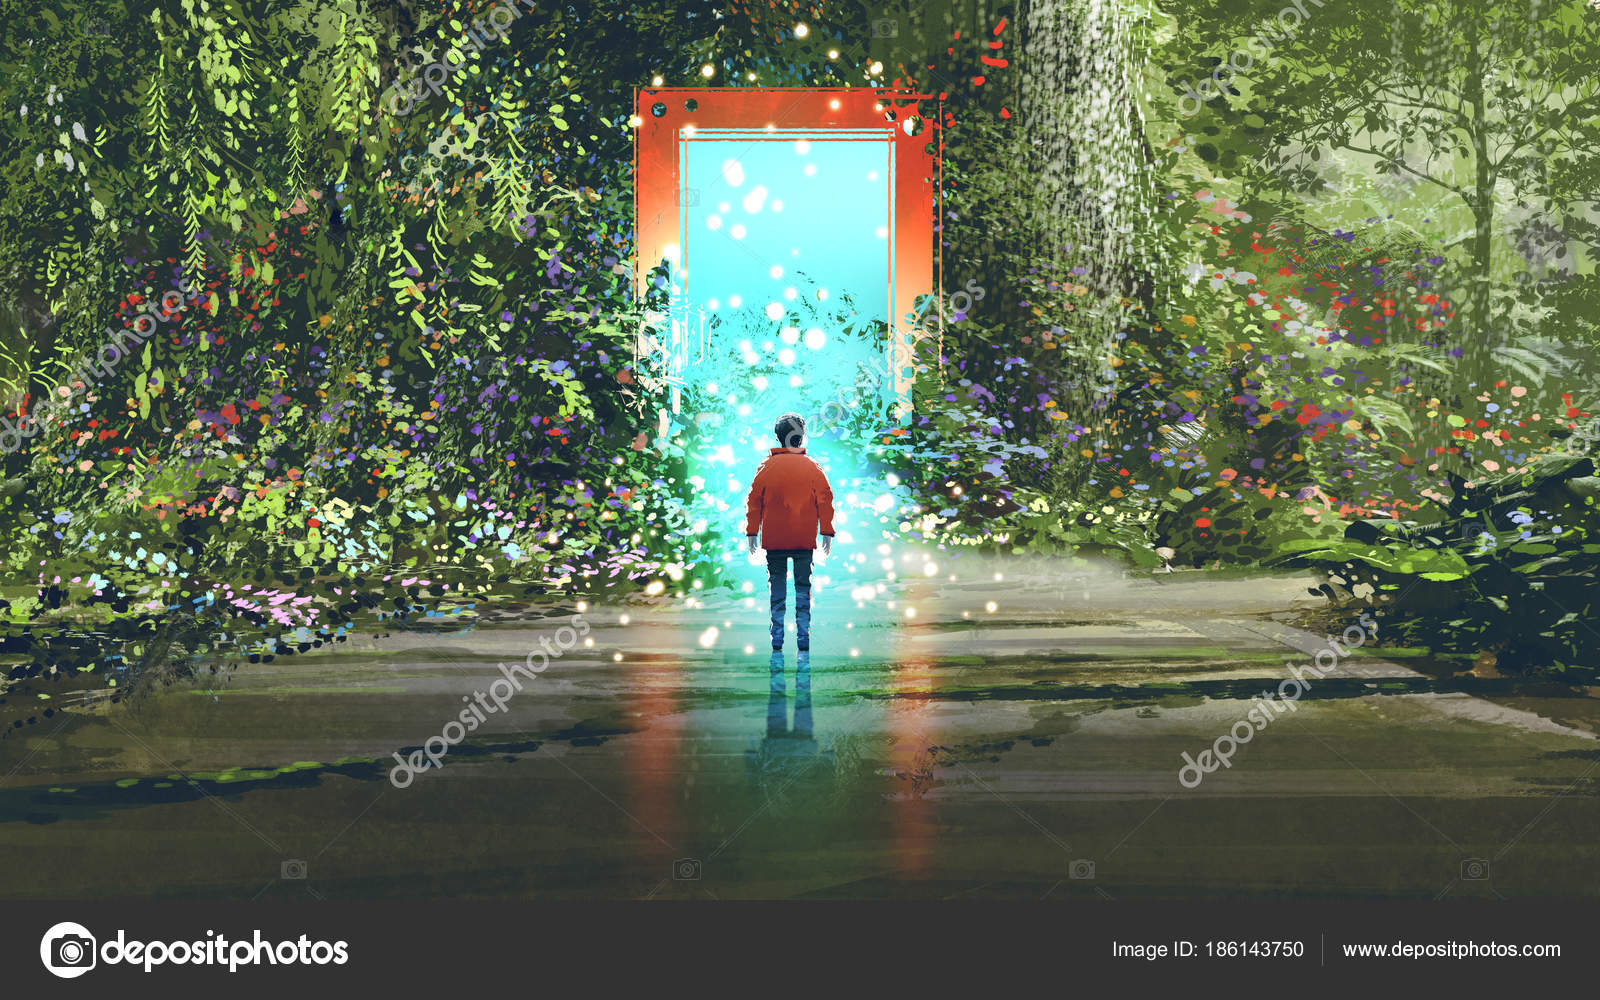 Fantasy Scenery Showing Boy Standing Front Magic Gate